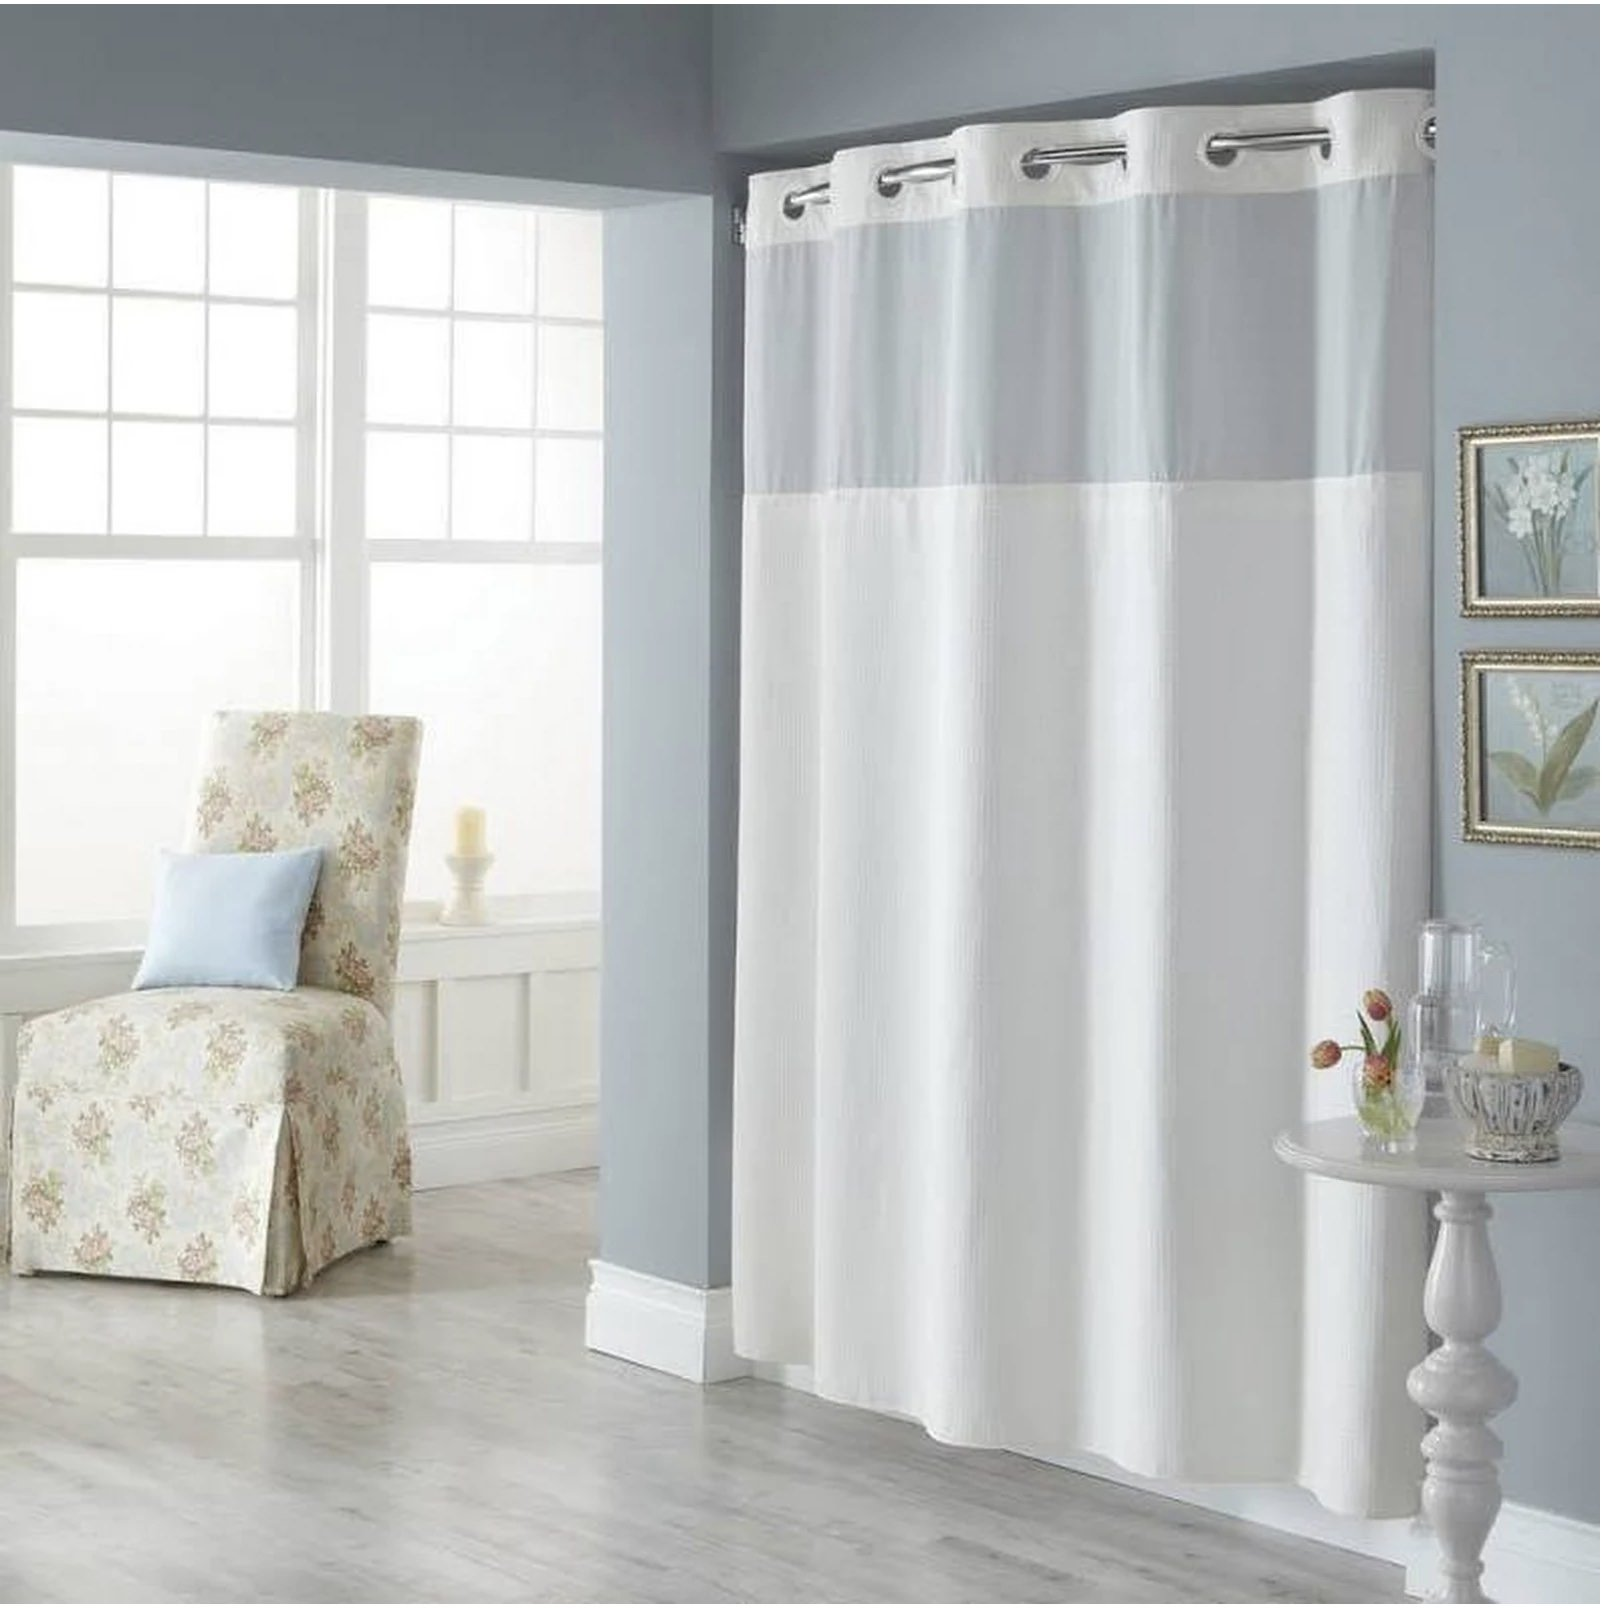 Trendy Linens Hookless Shower Curtain See Through Top Hotel Quality Polyester with Magnets, and Sheer Voile Peek-a-boo Window - 71'' x 74'', White